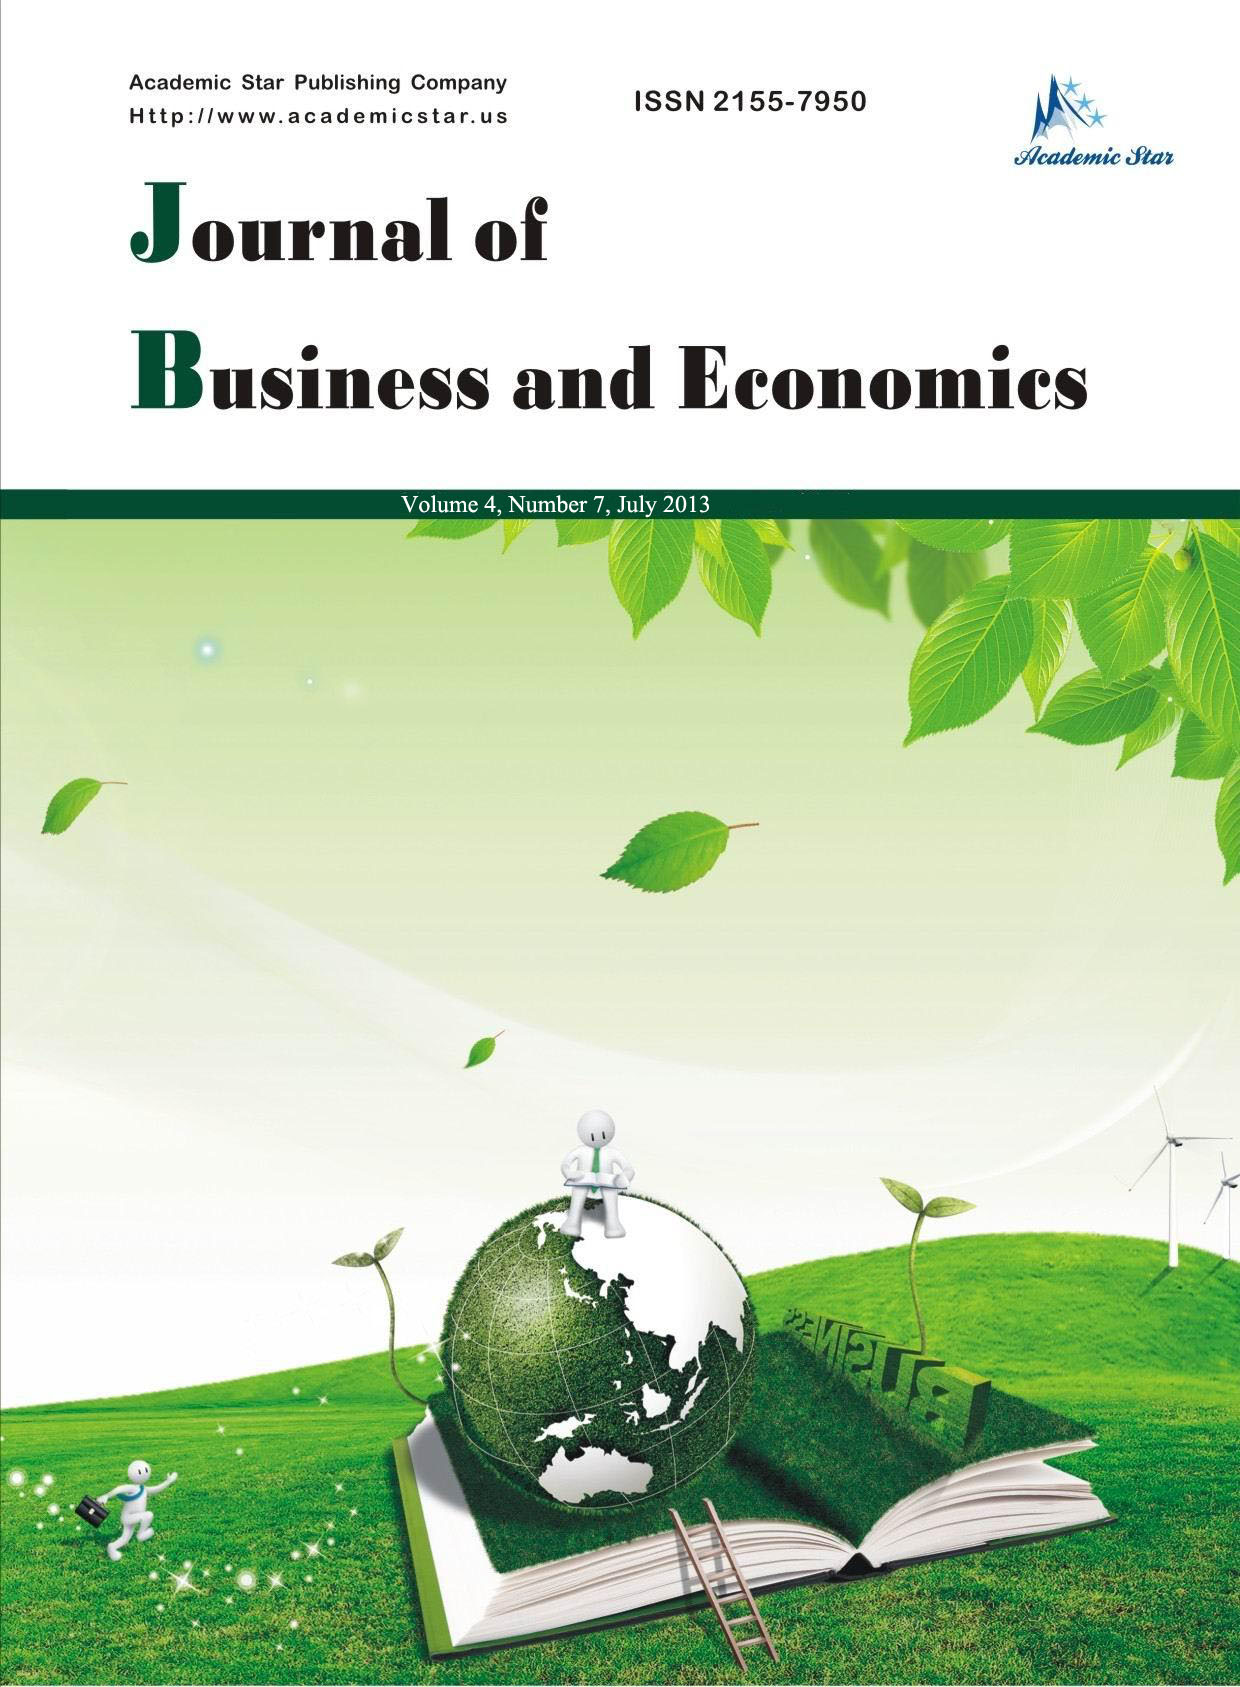 Journal of Business and Economics